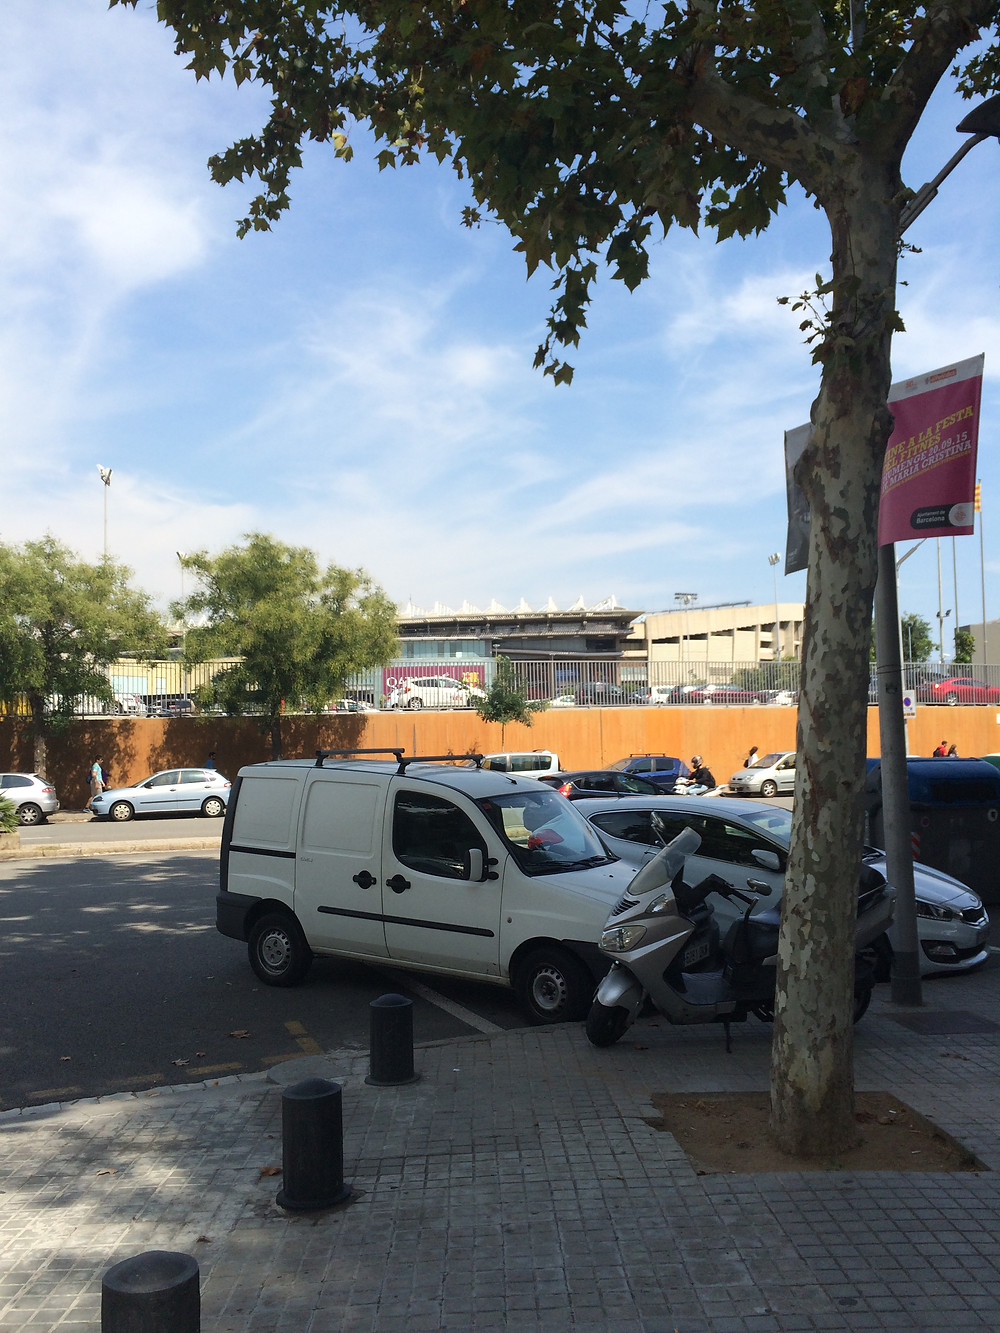 The Camp Nou across the street from MBP's office!